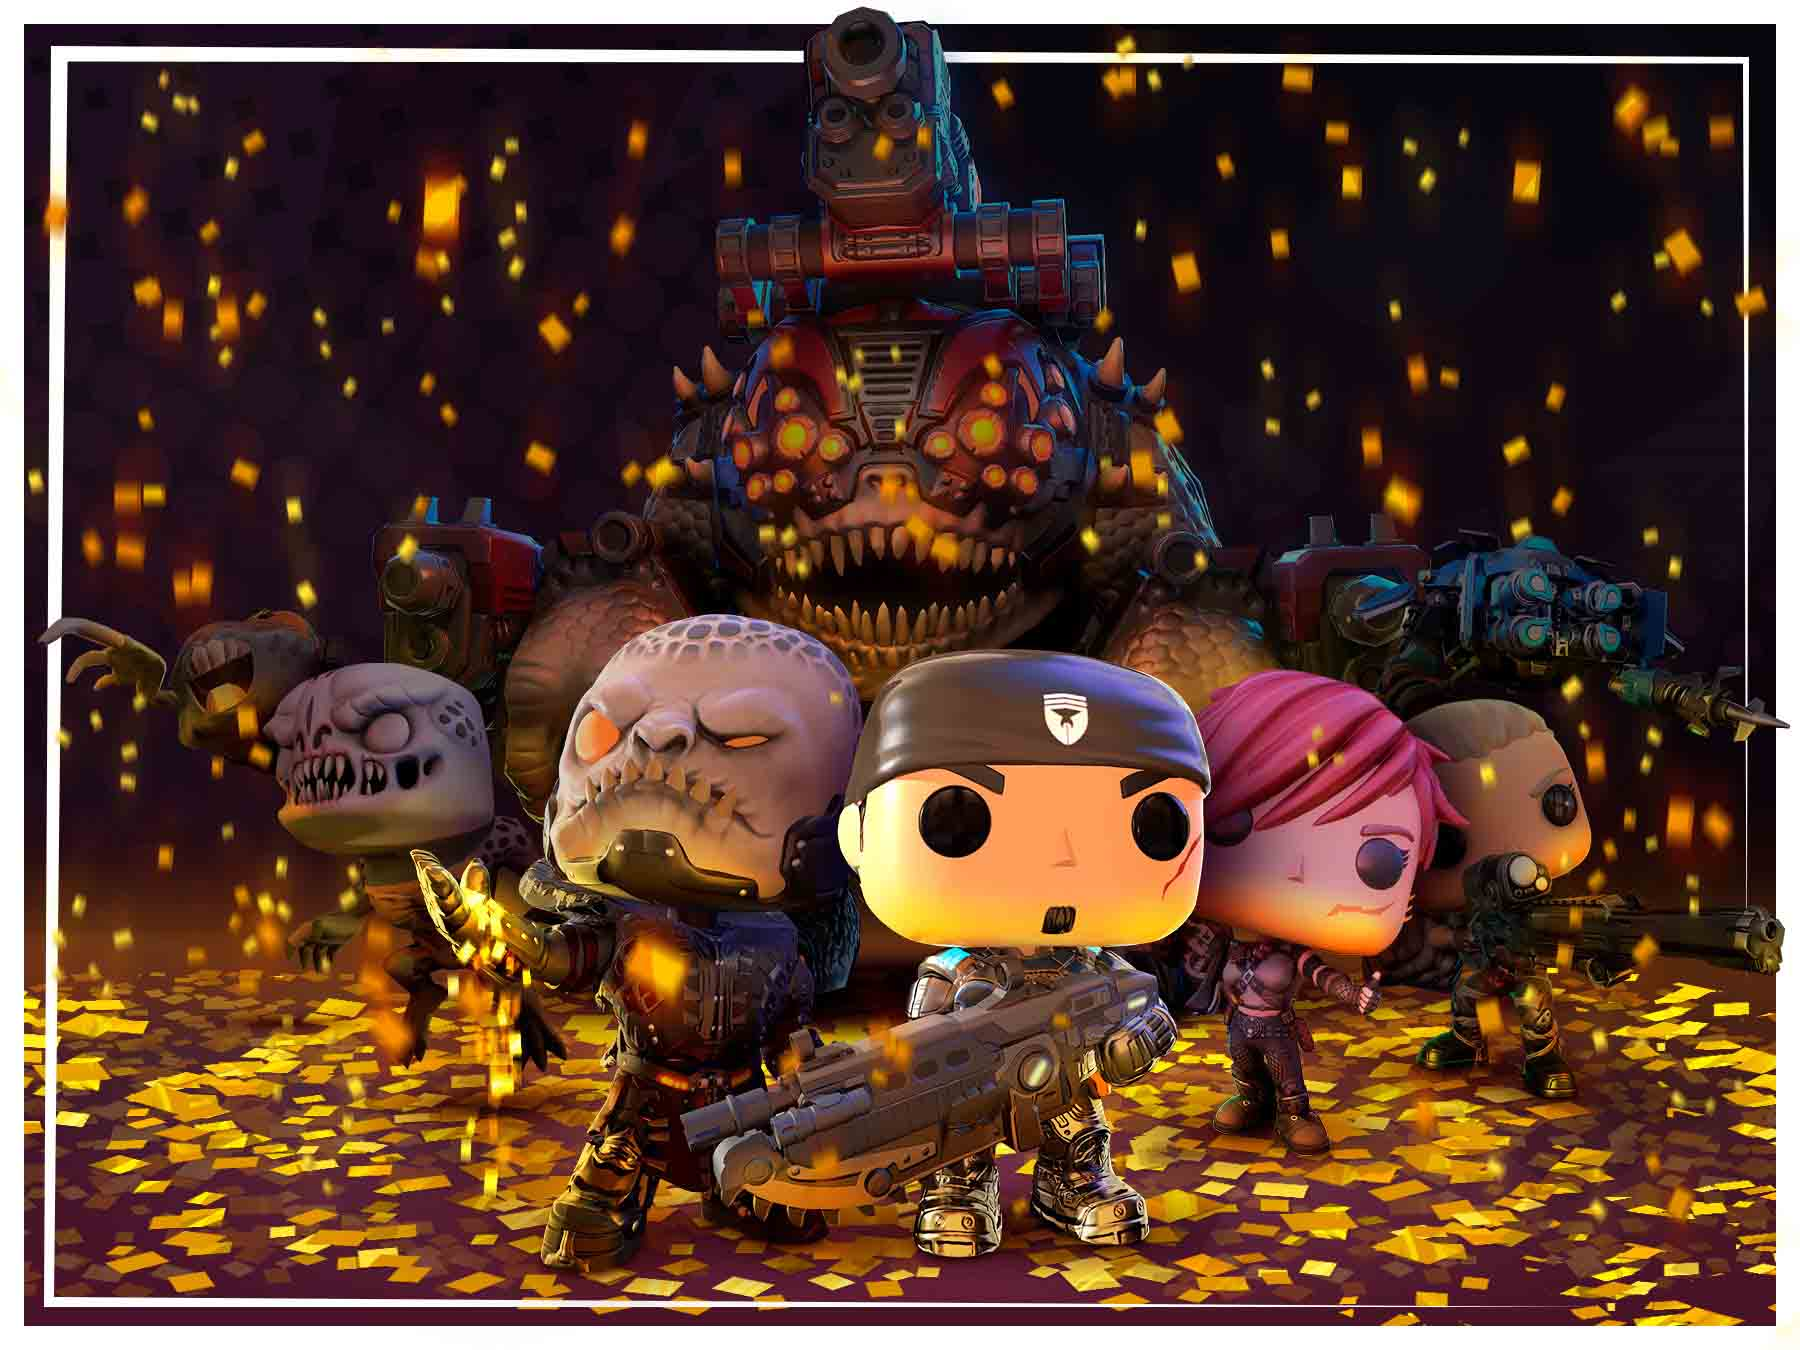 A variety of different Gears Pop! Characters with coins on the ground.